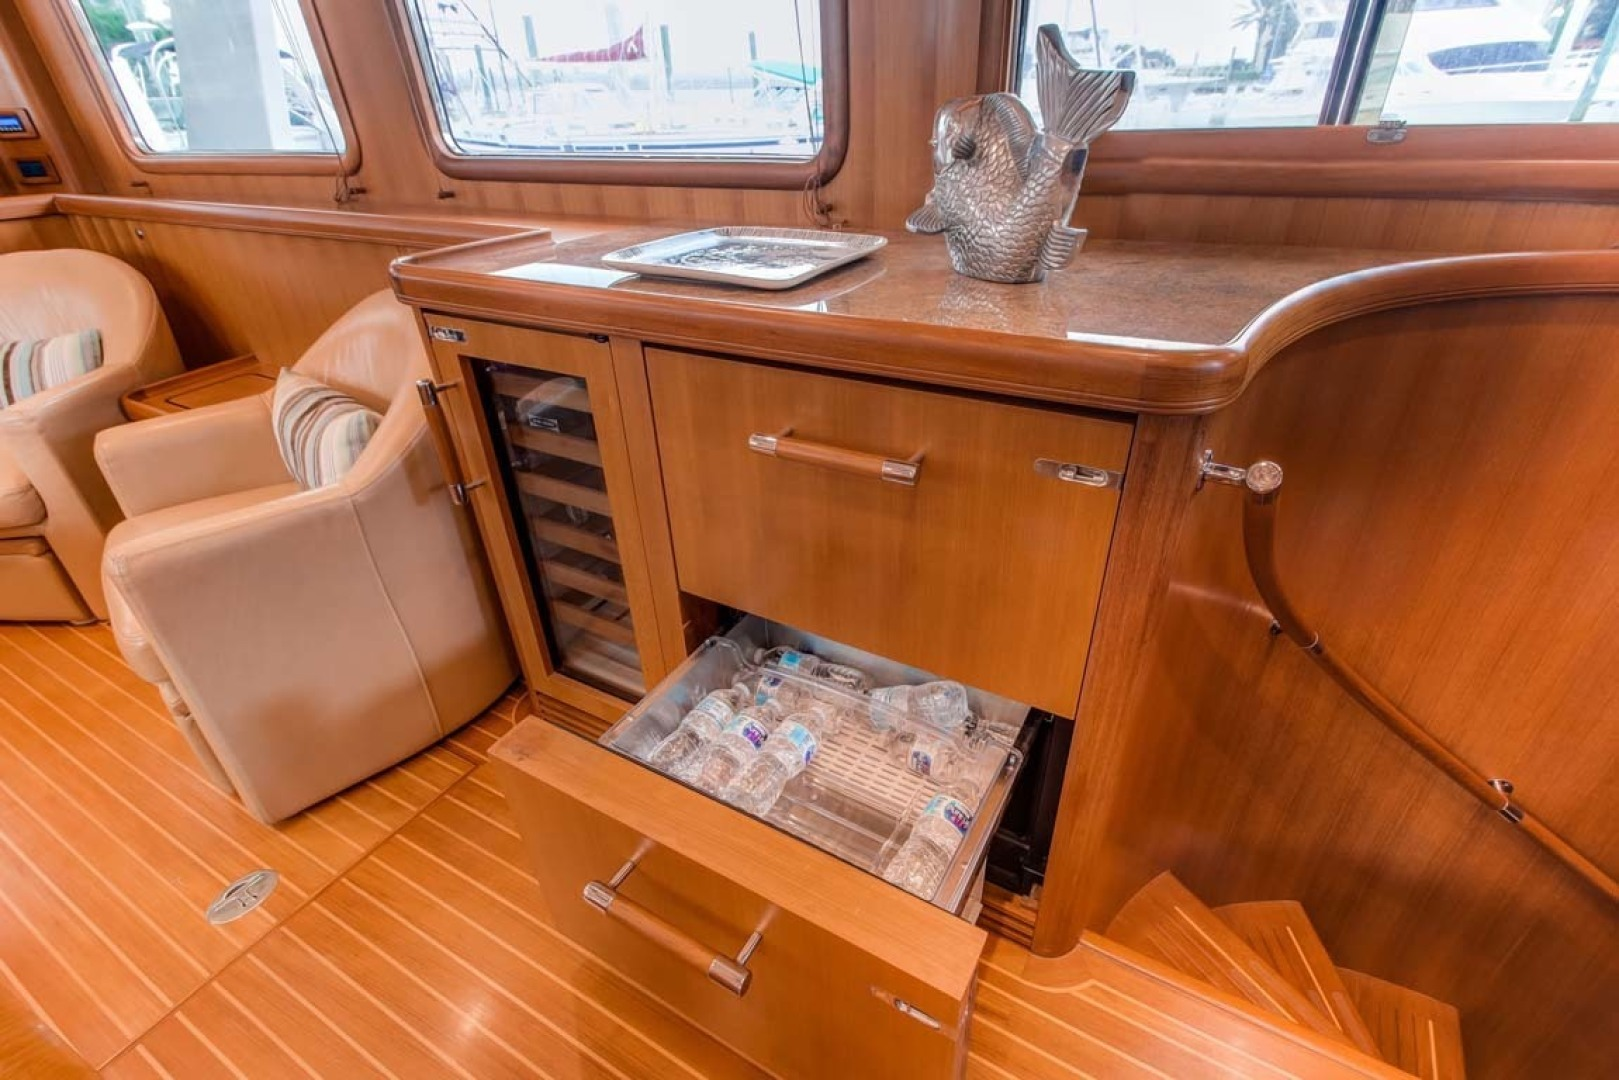 Selene-60 Ocean Trawler 2010-Gypsy Magic Jacksonville-Florida-United States-Galley And Stairs To Staterooms-1346746 | Thumbnail